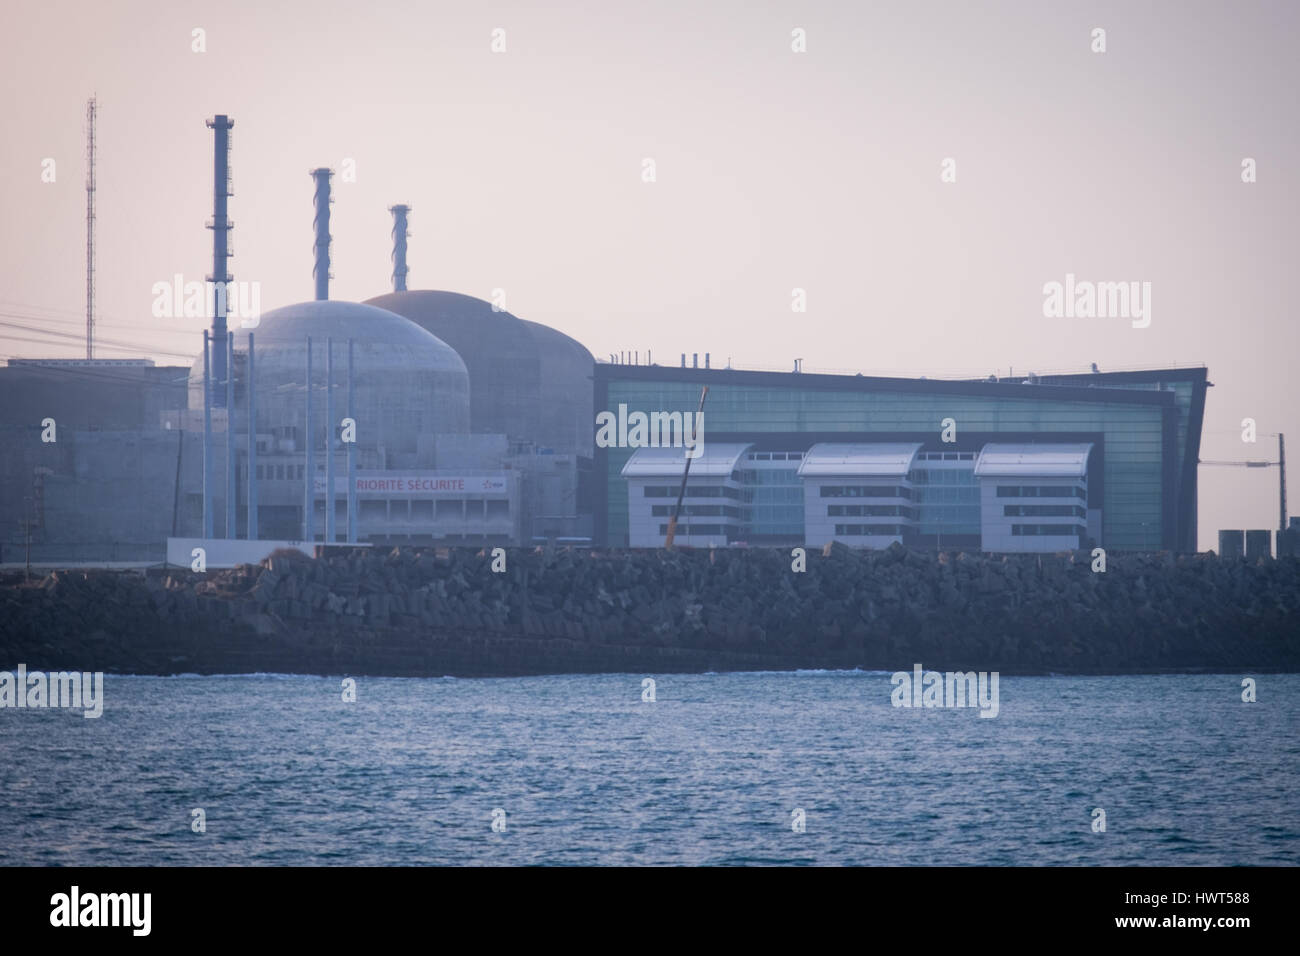 Flamanville nuclear power station in Dielette, France. - Stock Image